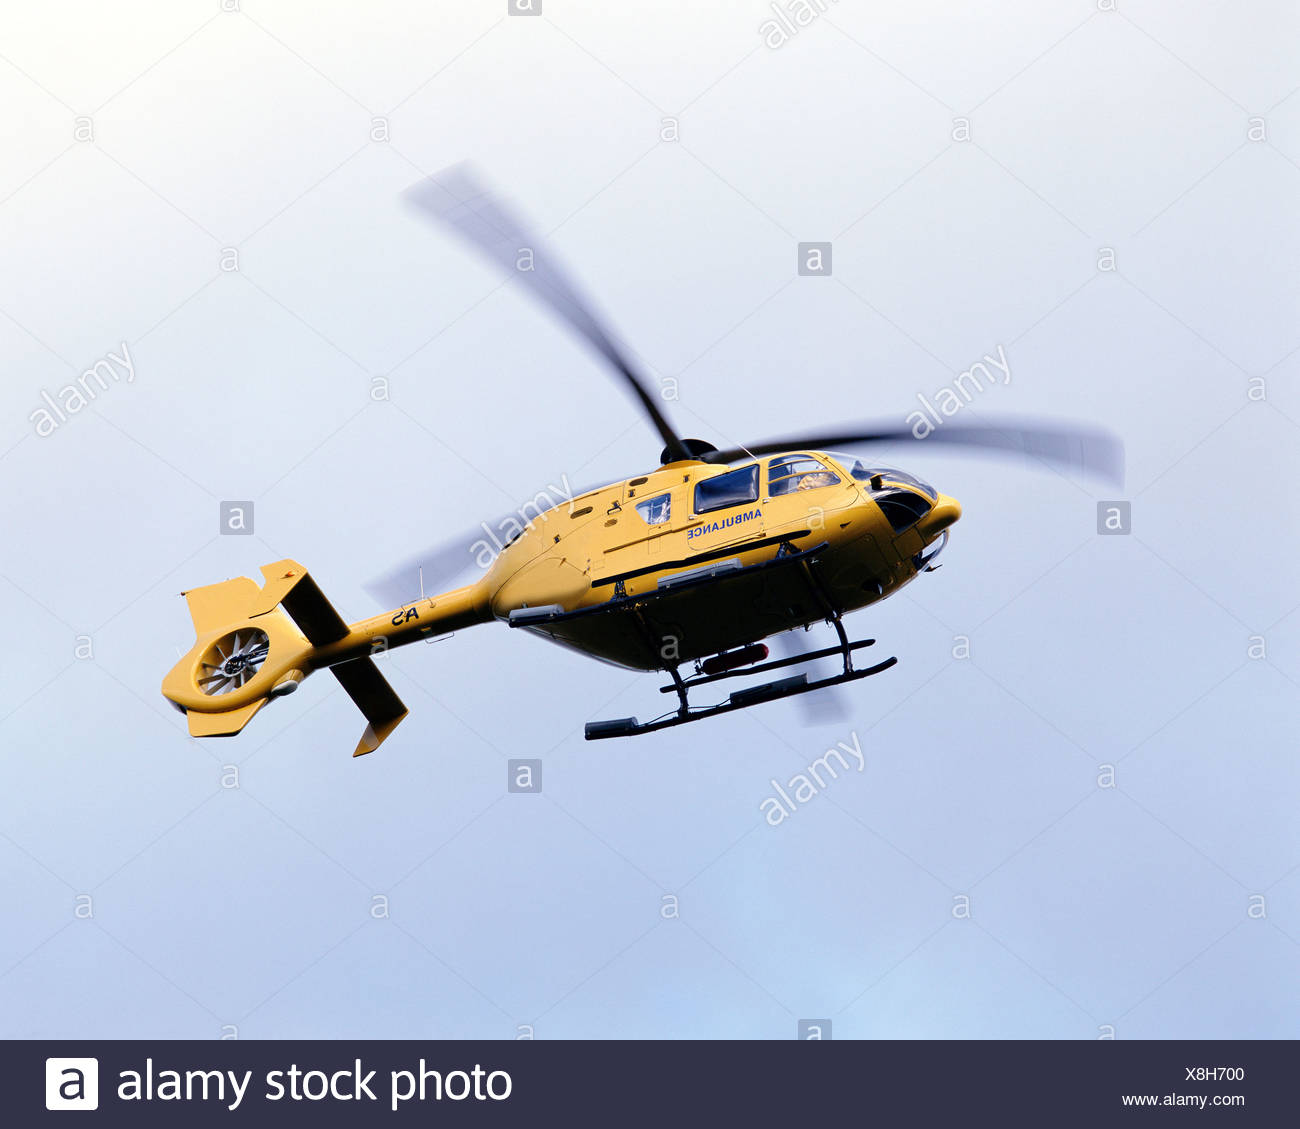 Helicopter from below - Stock Image